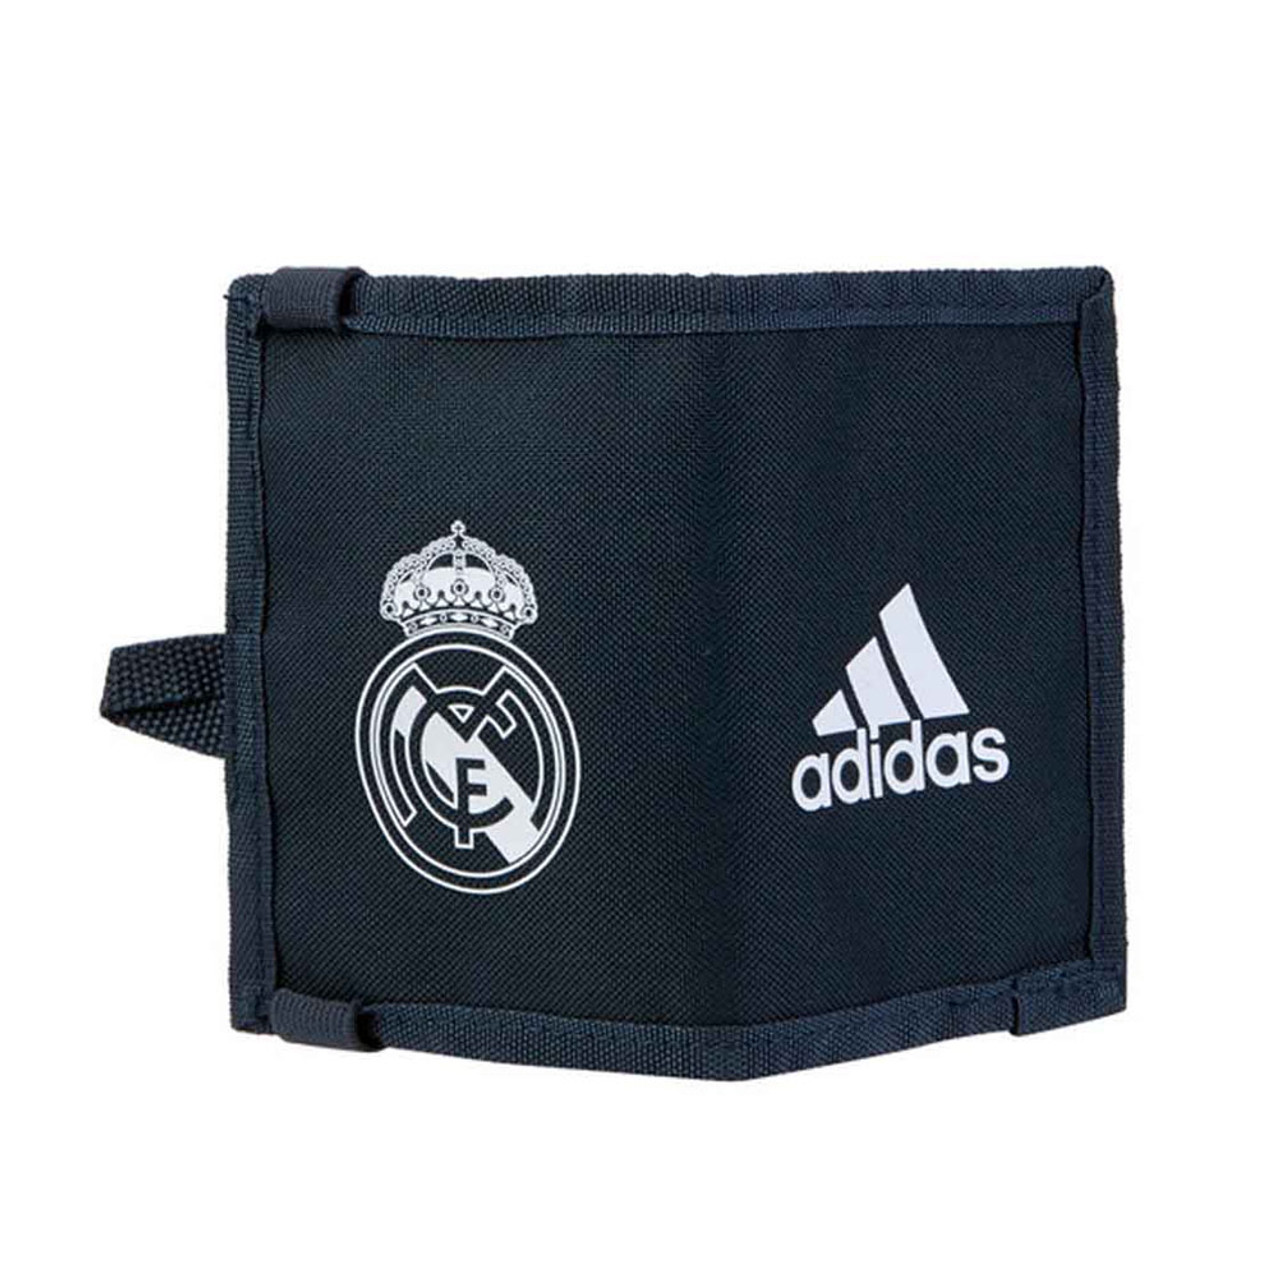 6ae43c7dfc659 ADIDAS Manchester United MUFC wallet  black red ADIDAS Real Madrid 2018 19  Wallet  dark grey